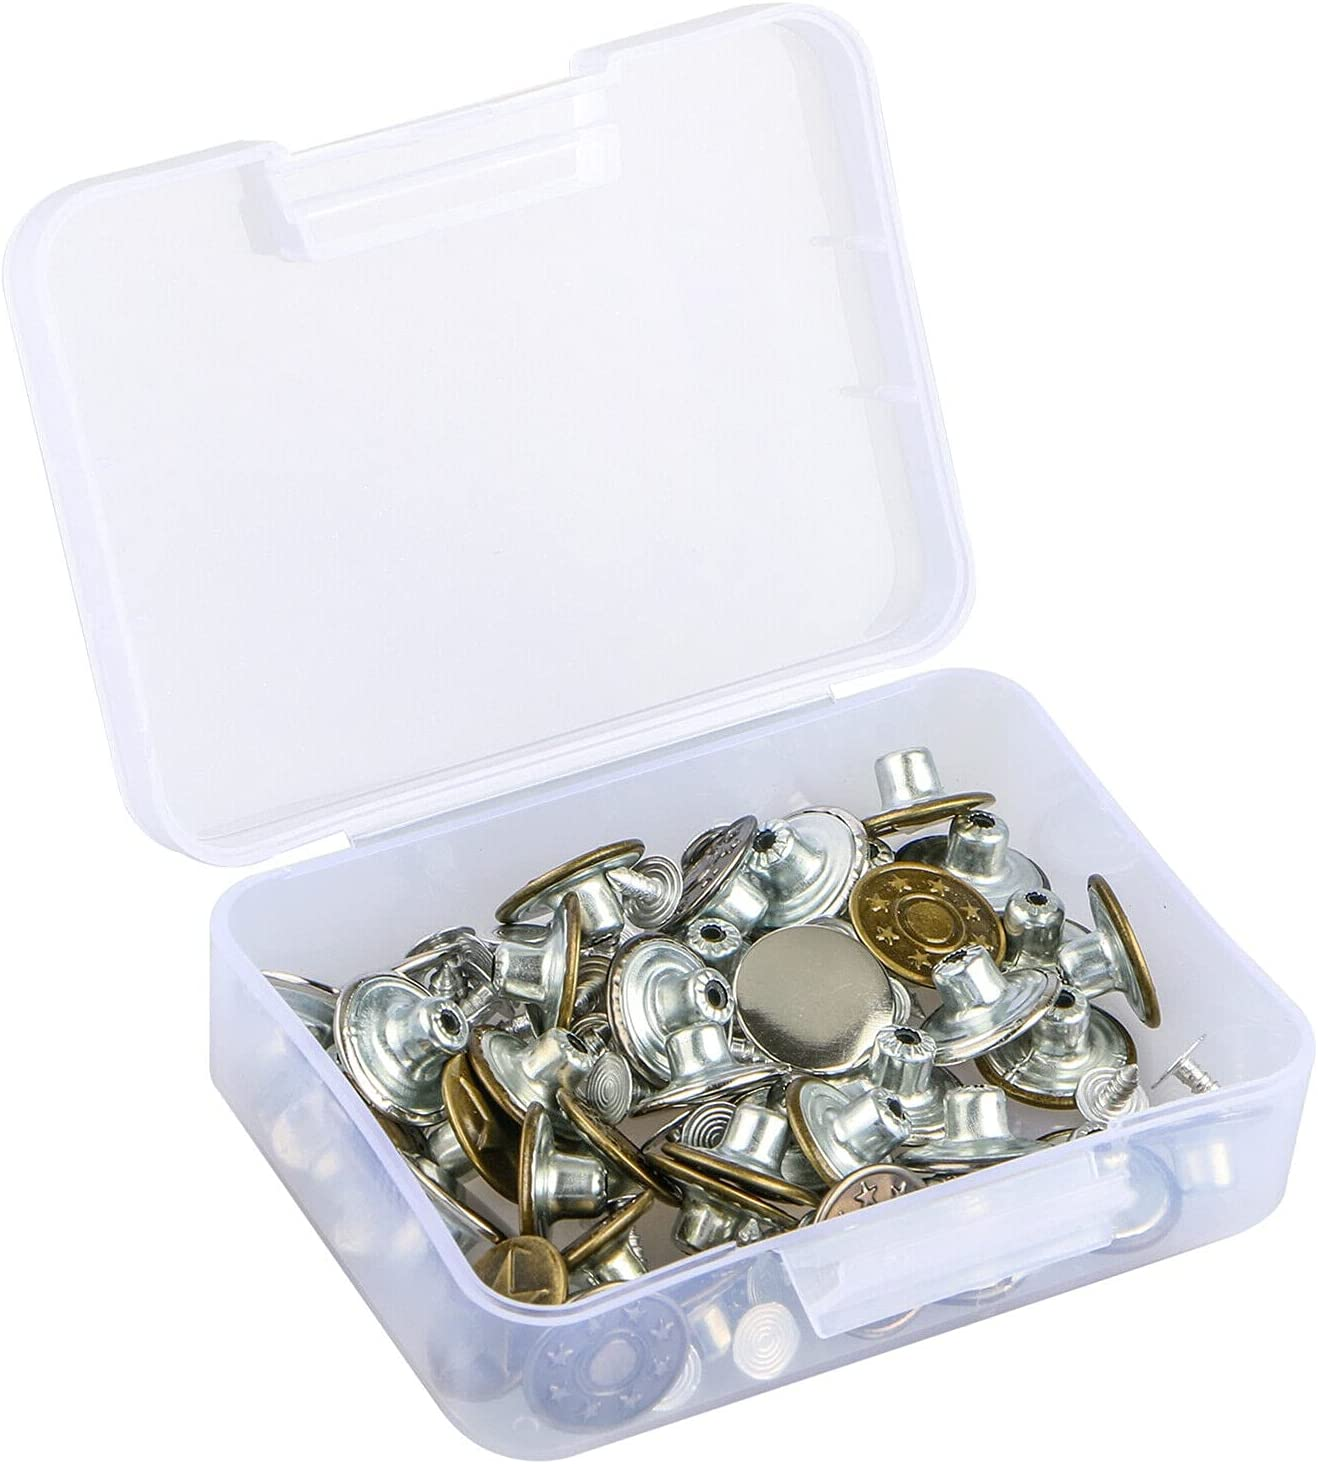 Kosoree 40 Sets Metal Jeans Indianapolis Mall Button Kit Replacement Al sold out. Tack Buttons